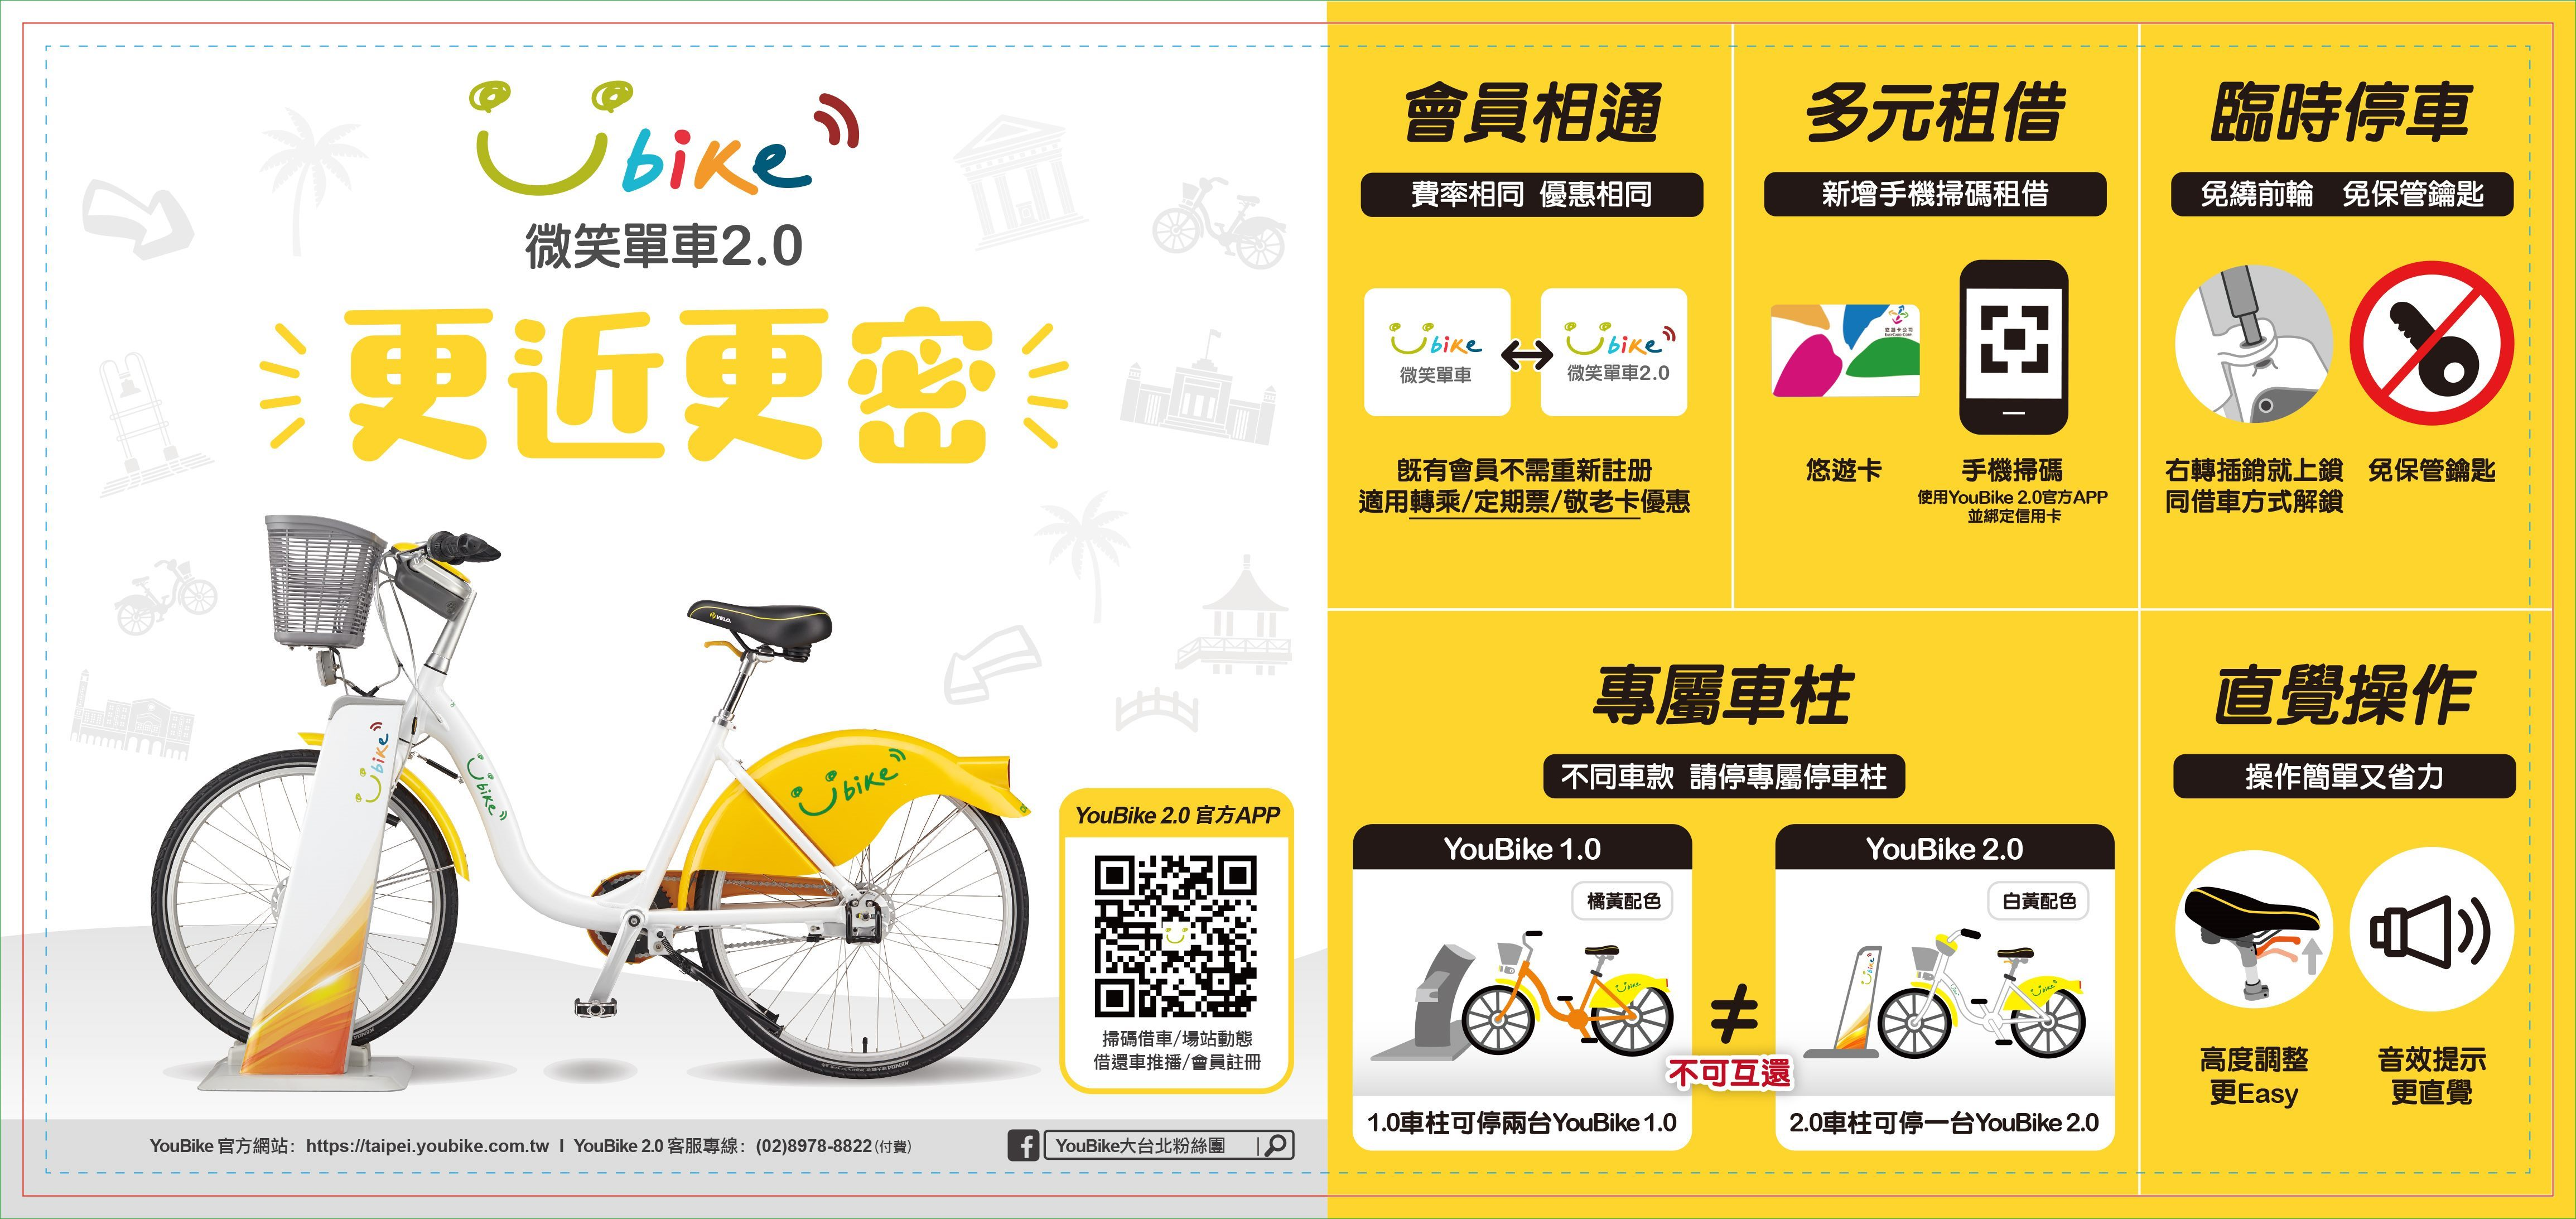 YouBike 2.0 System